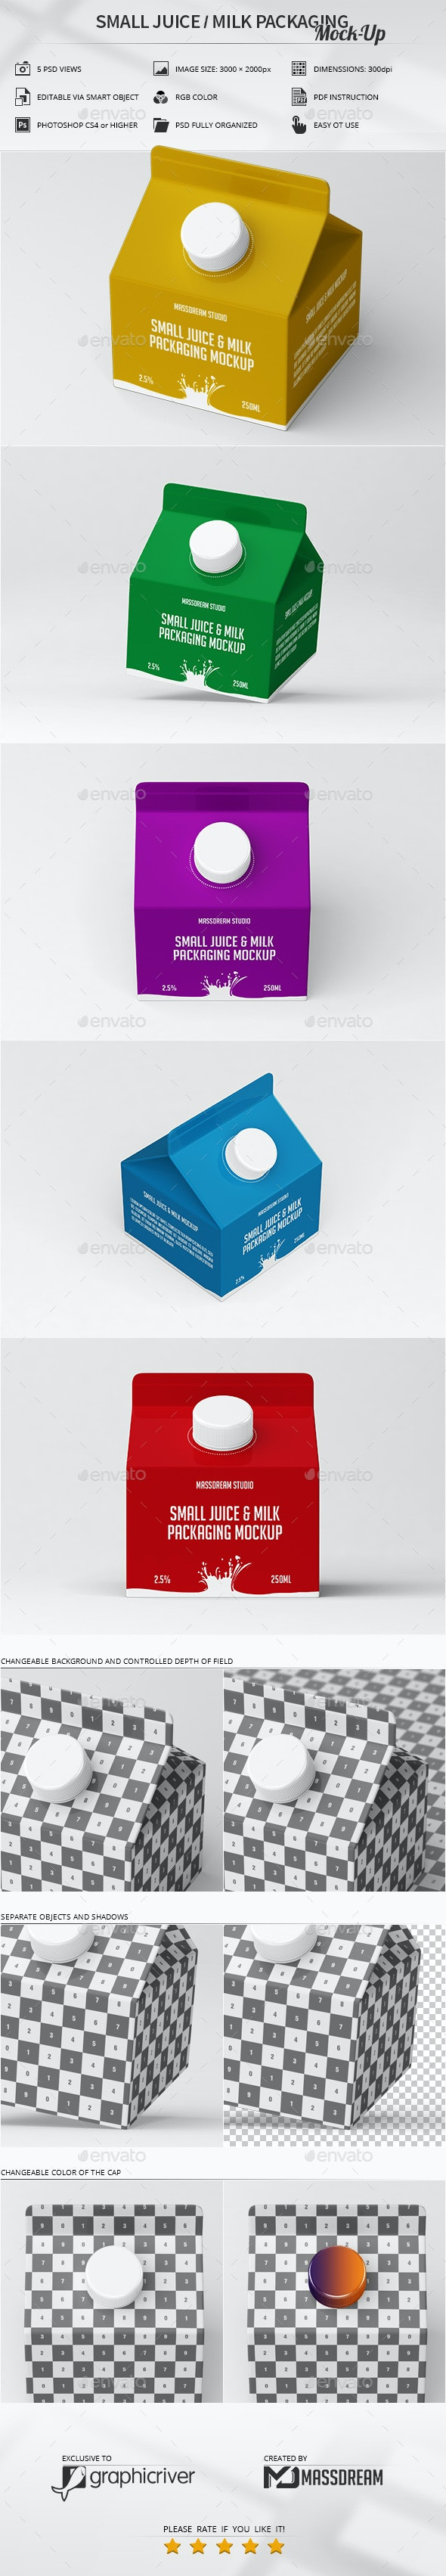 Small Juice / Milk Packaging Mock-Up - Product Mock-Ups Graphics